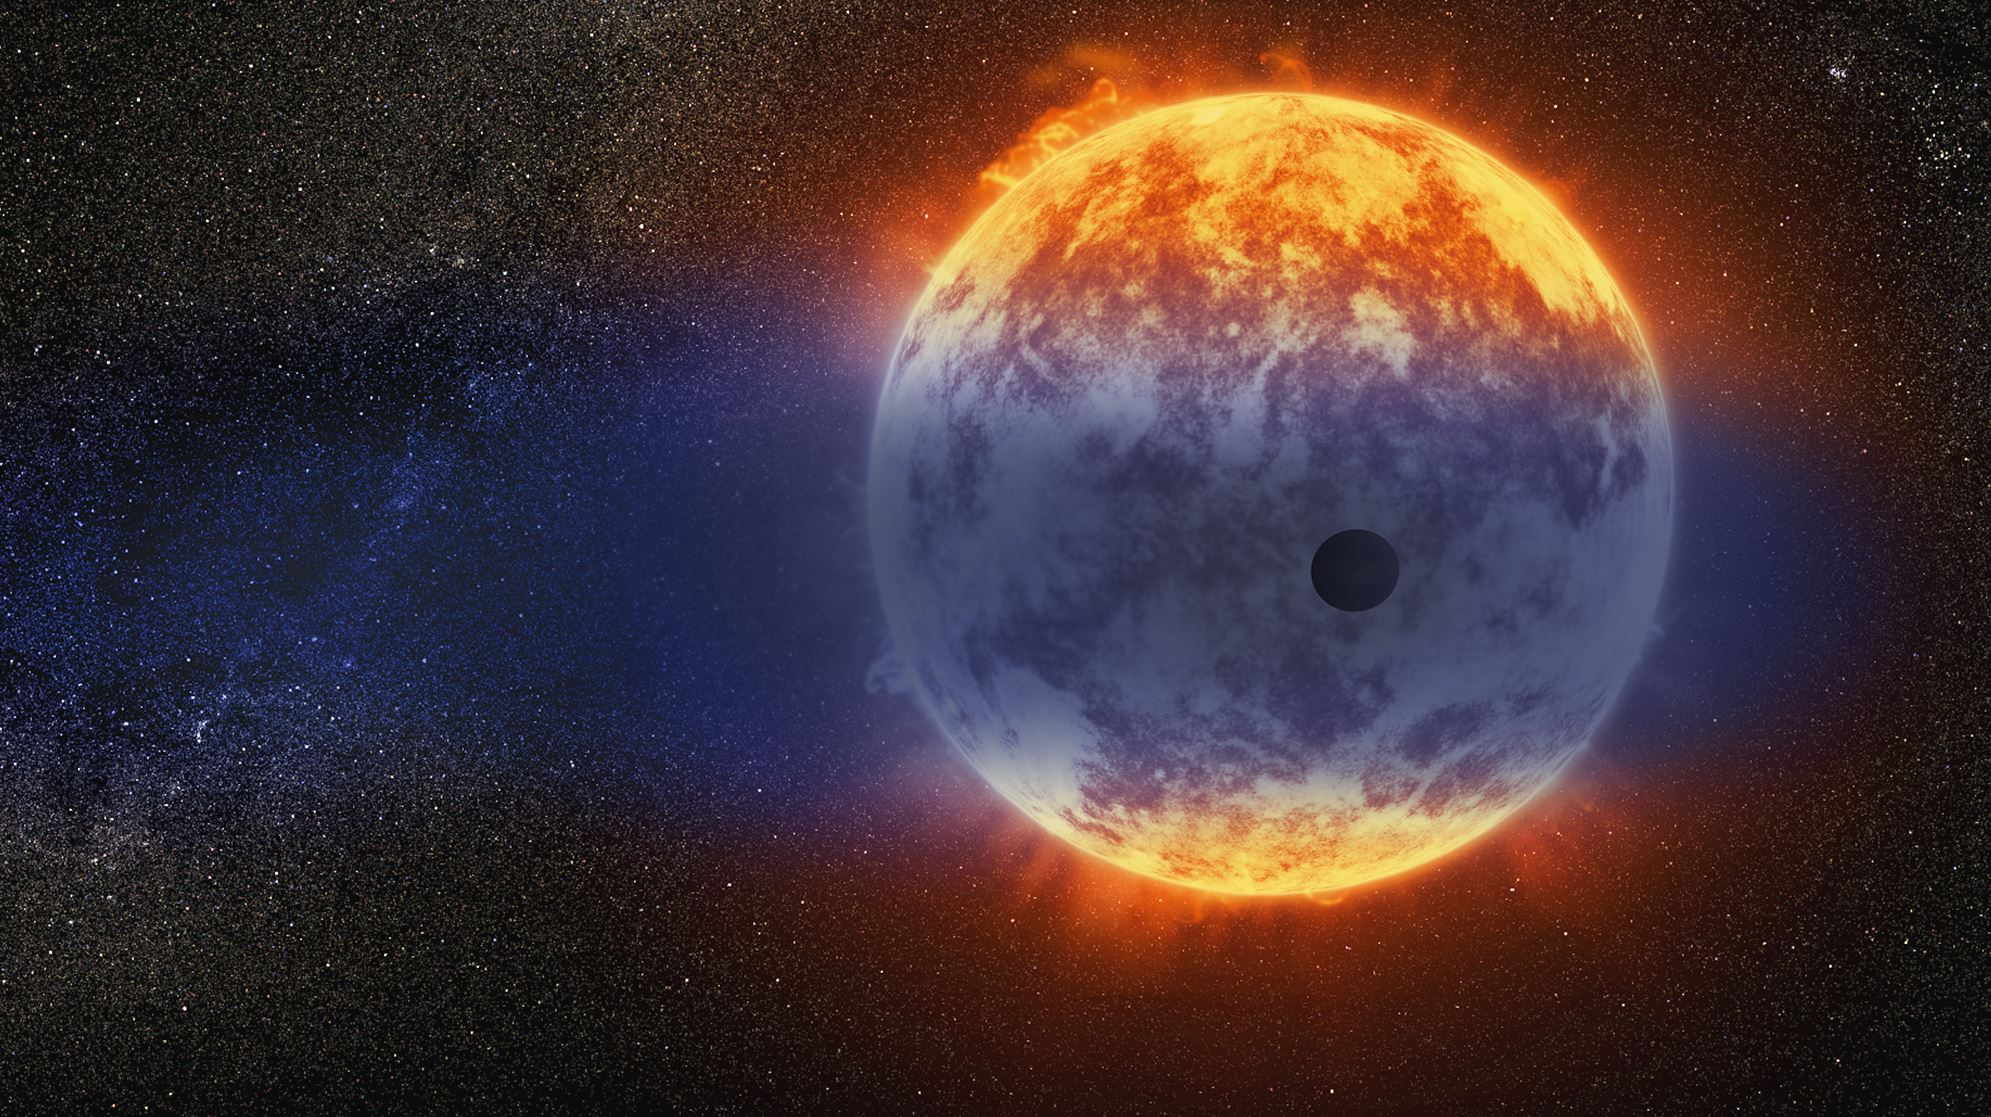 This artist's illustration shows a giant cloud of hydrogen streaming off a warm, Neptune-sized planet just 97 light-years from Earth. The exoplanet is tiny compared to its star, a red dwarf named GJ 3470. The star's intense radiation is heating the hydrogen in the planet's upper atmosphere to a point where it escapes into space. - Image Credit: NASA, ESA, and D. Player/STScI